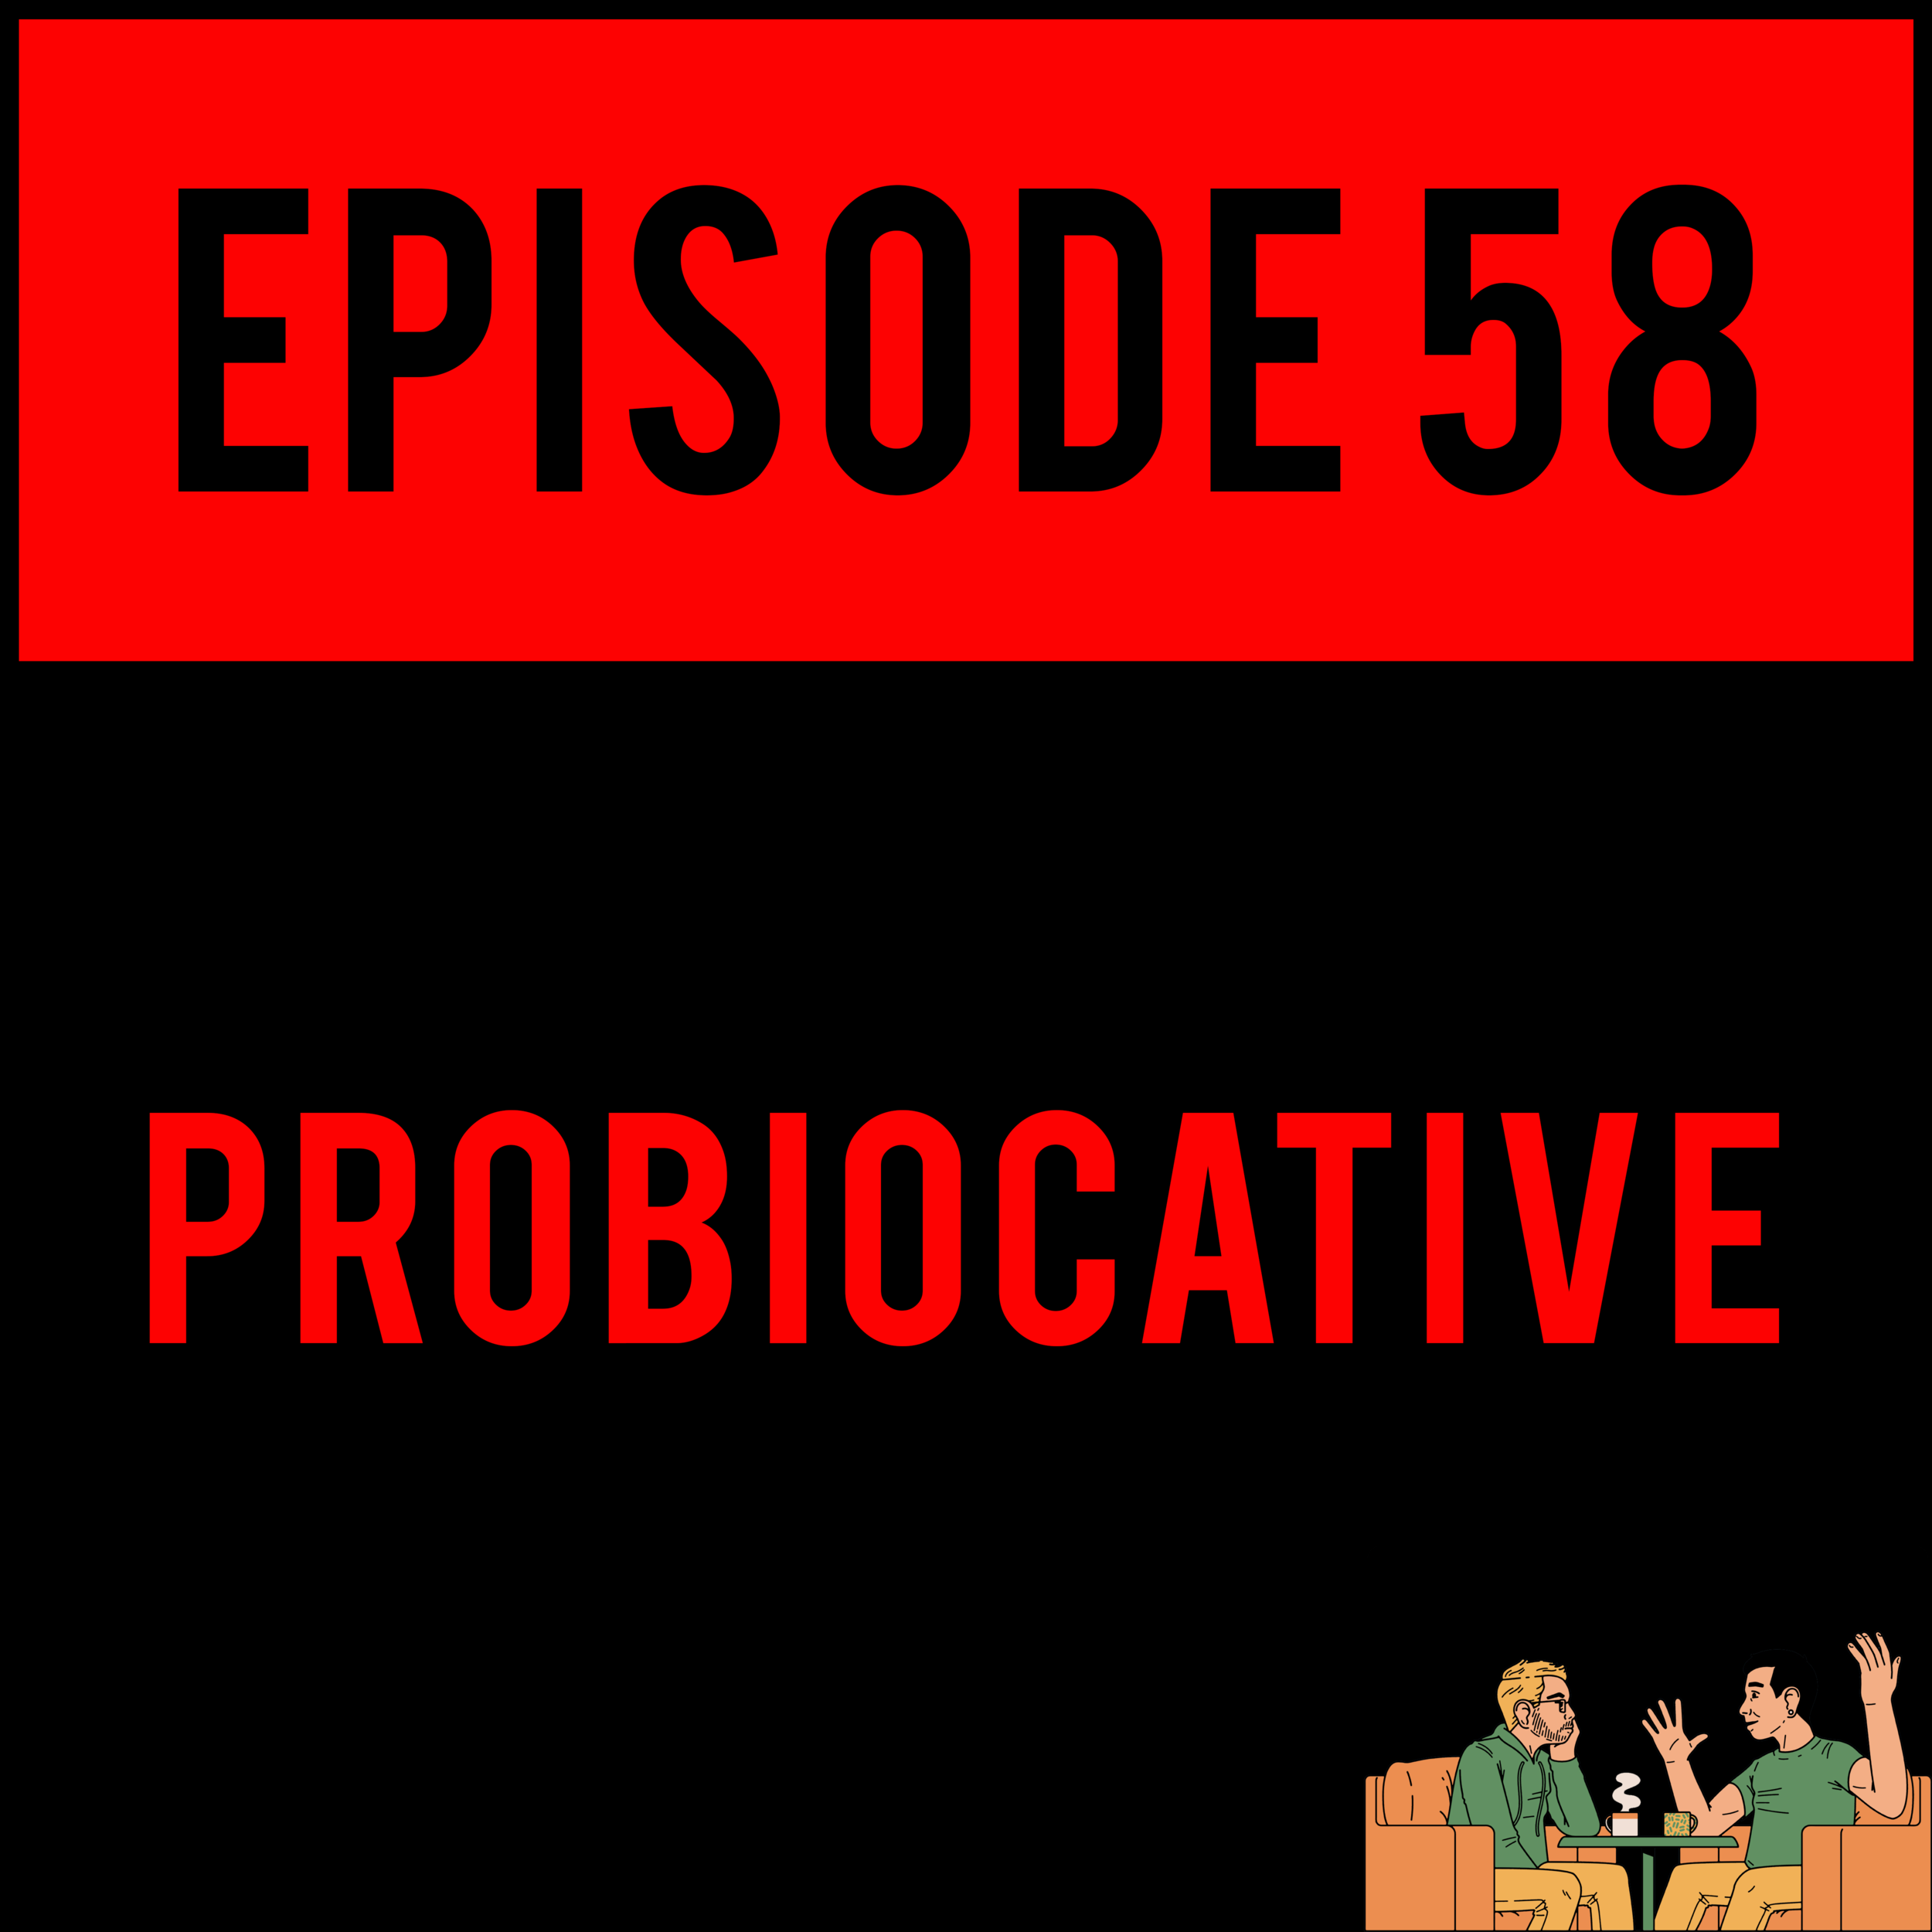 EPISODE 58 - Alex shocks the world by getting drunk,Robbie Clarkshocks the world by talking aboutMarvel and Justyn shocks the world by laughing before his punchlines. PROBIOCATIVE - EPISODE 58 is s'good.